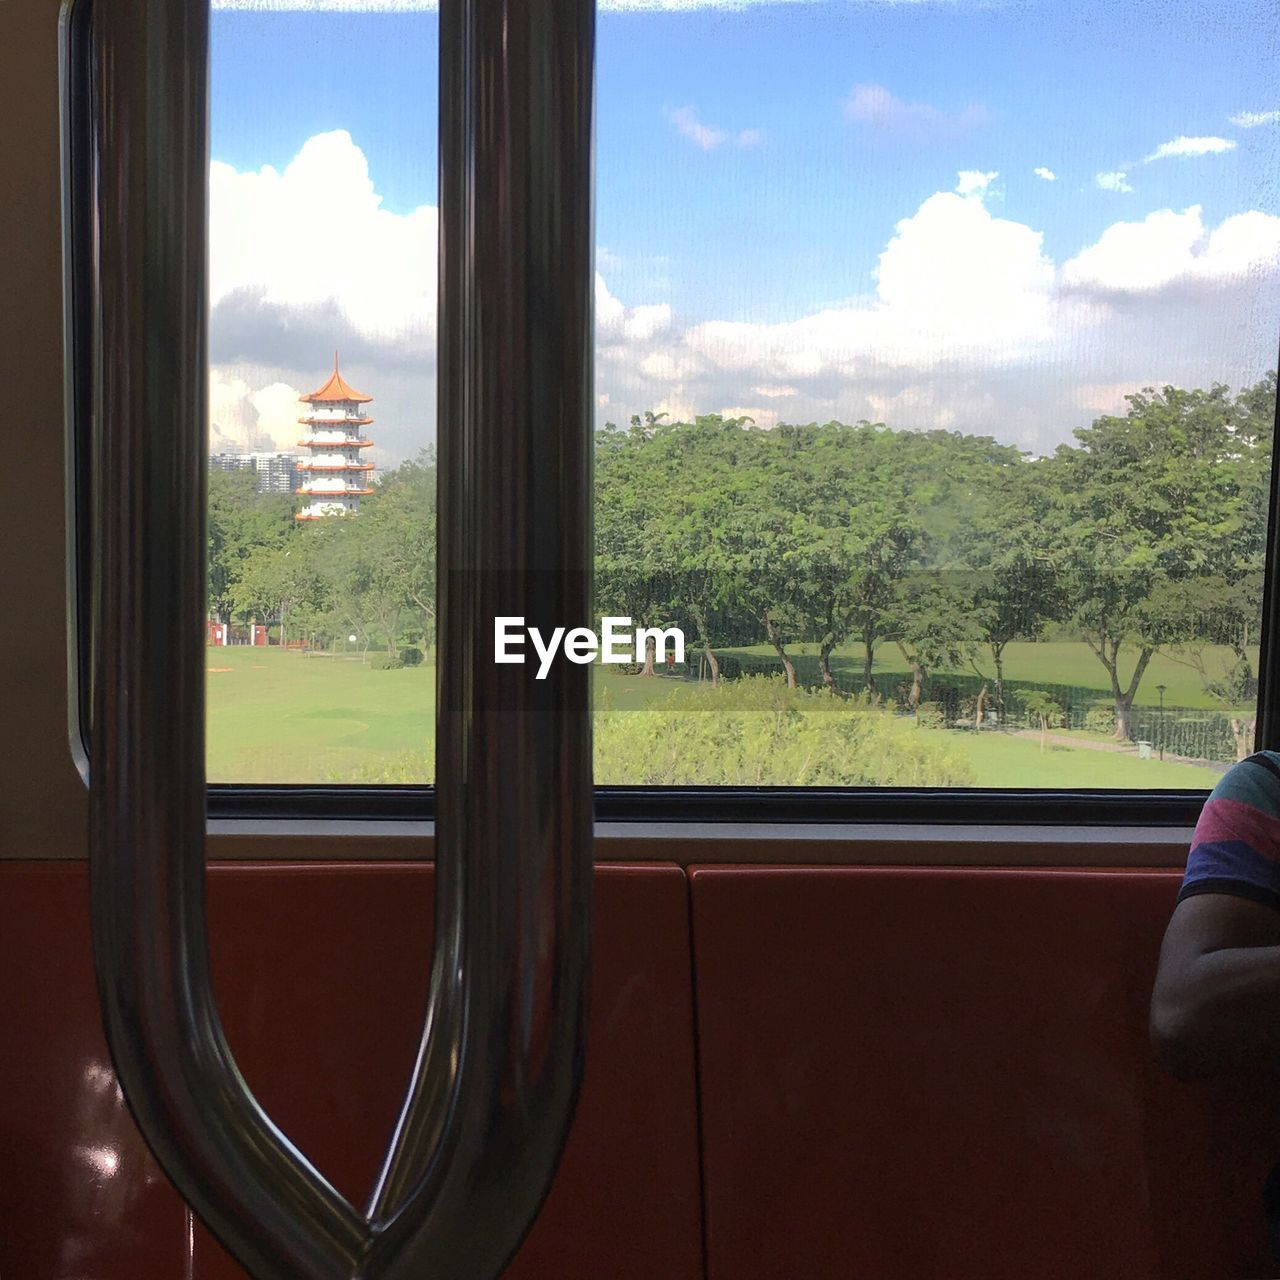 window, glass - material, vehicle interior, sky, transportation, cloud - sky, day, tree, real people, indoors, train - vehicle, land vehicle, one person, mountain, nature, close-up, people